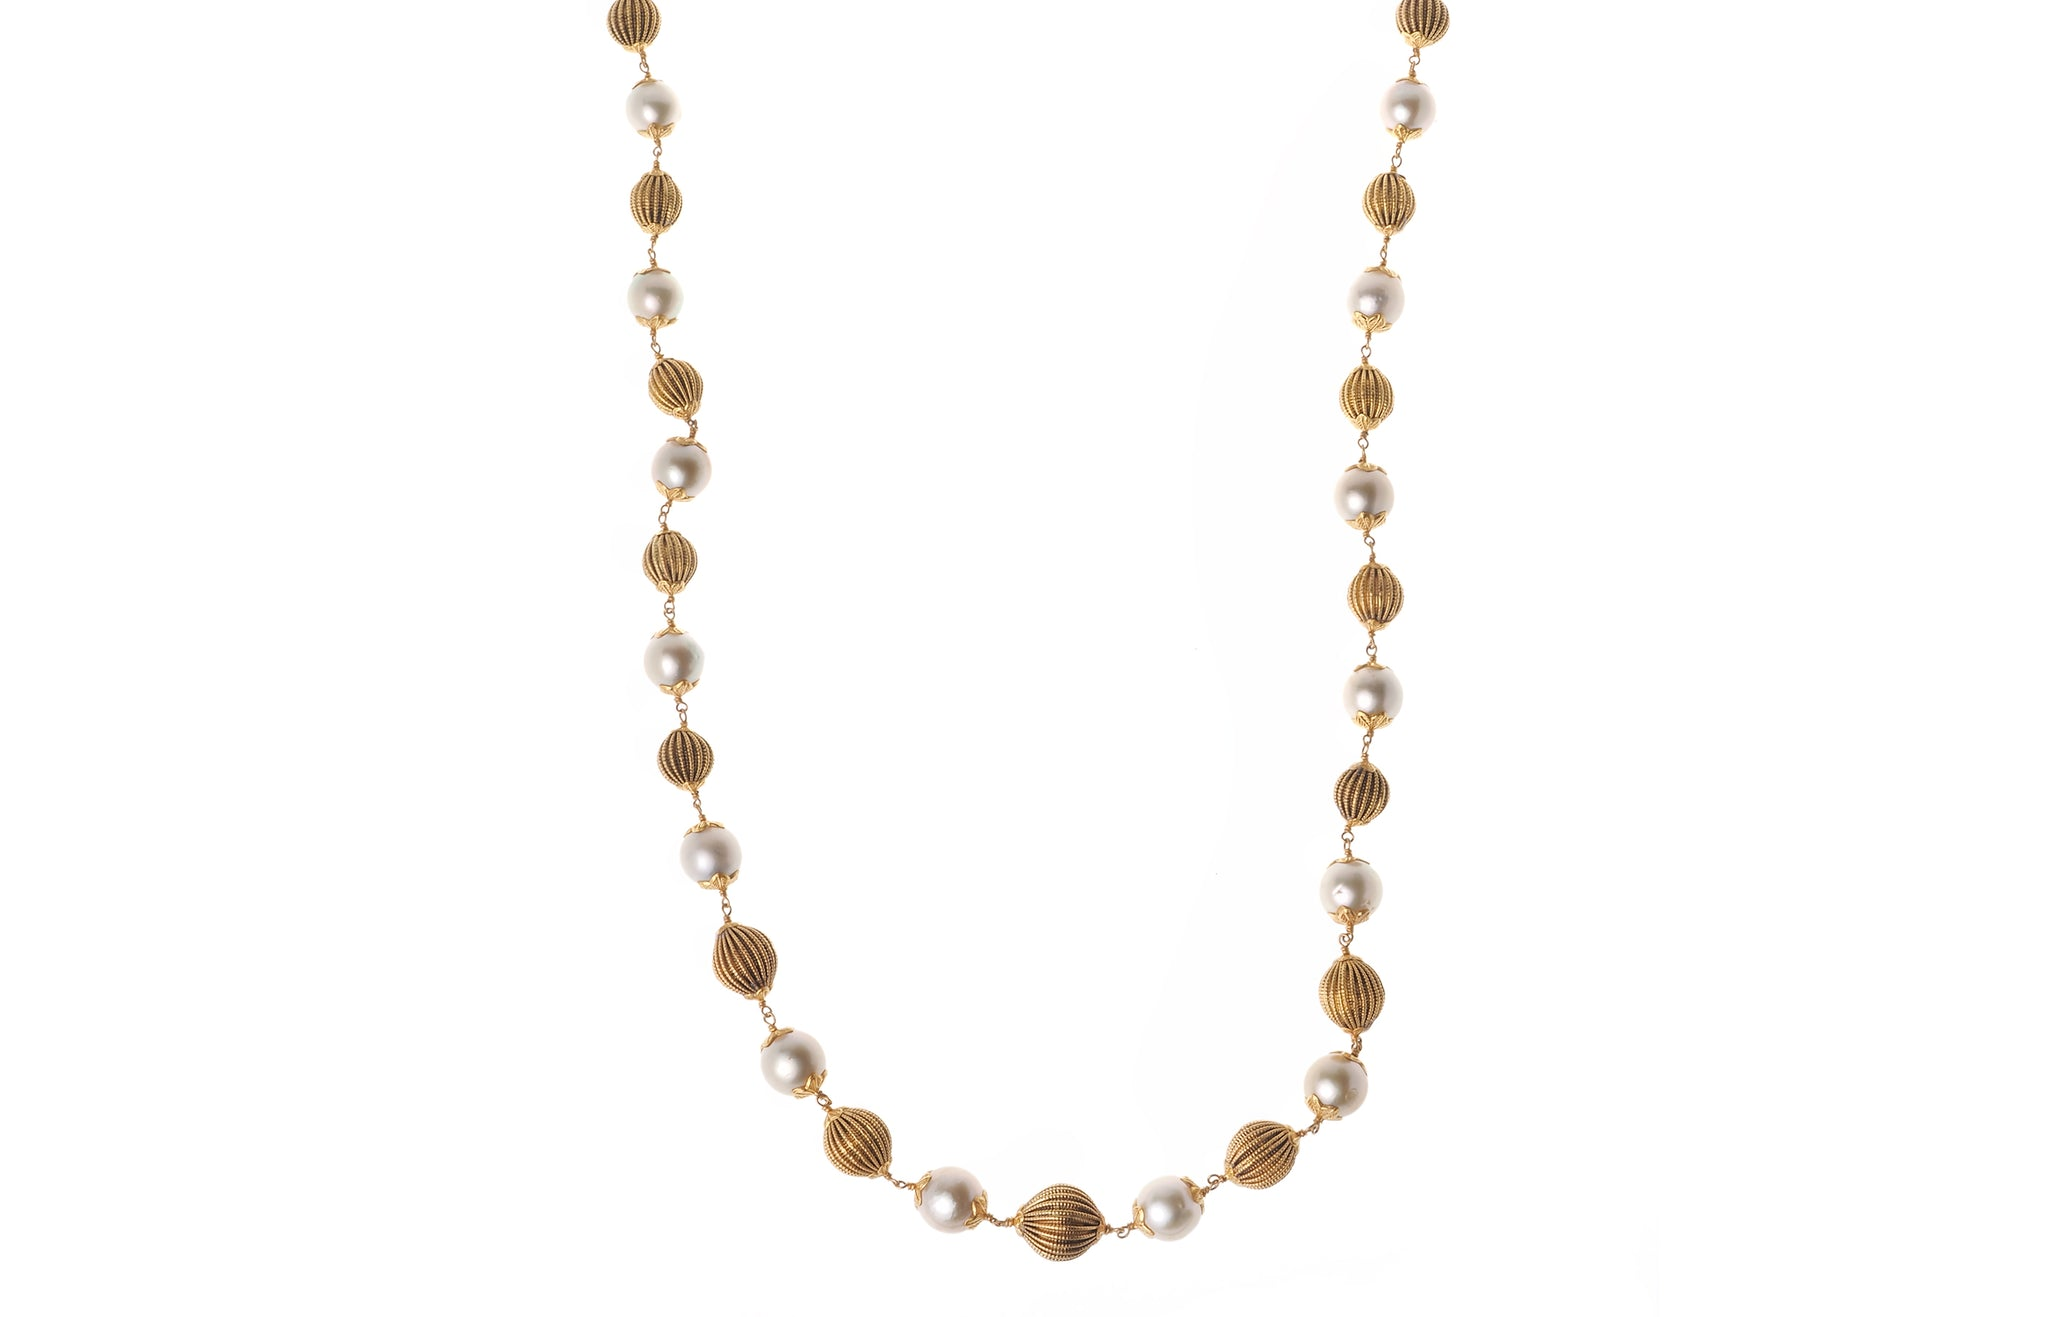 22ct Gold Antiquated Look Necklace with Cultured Pearls (GMS-E063)